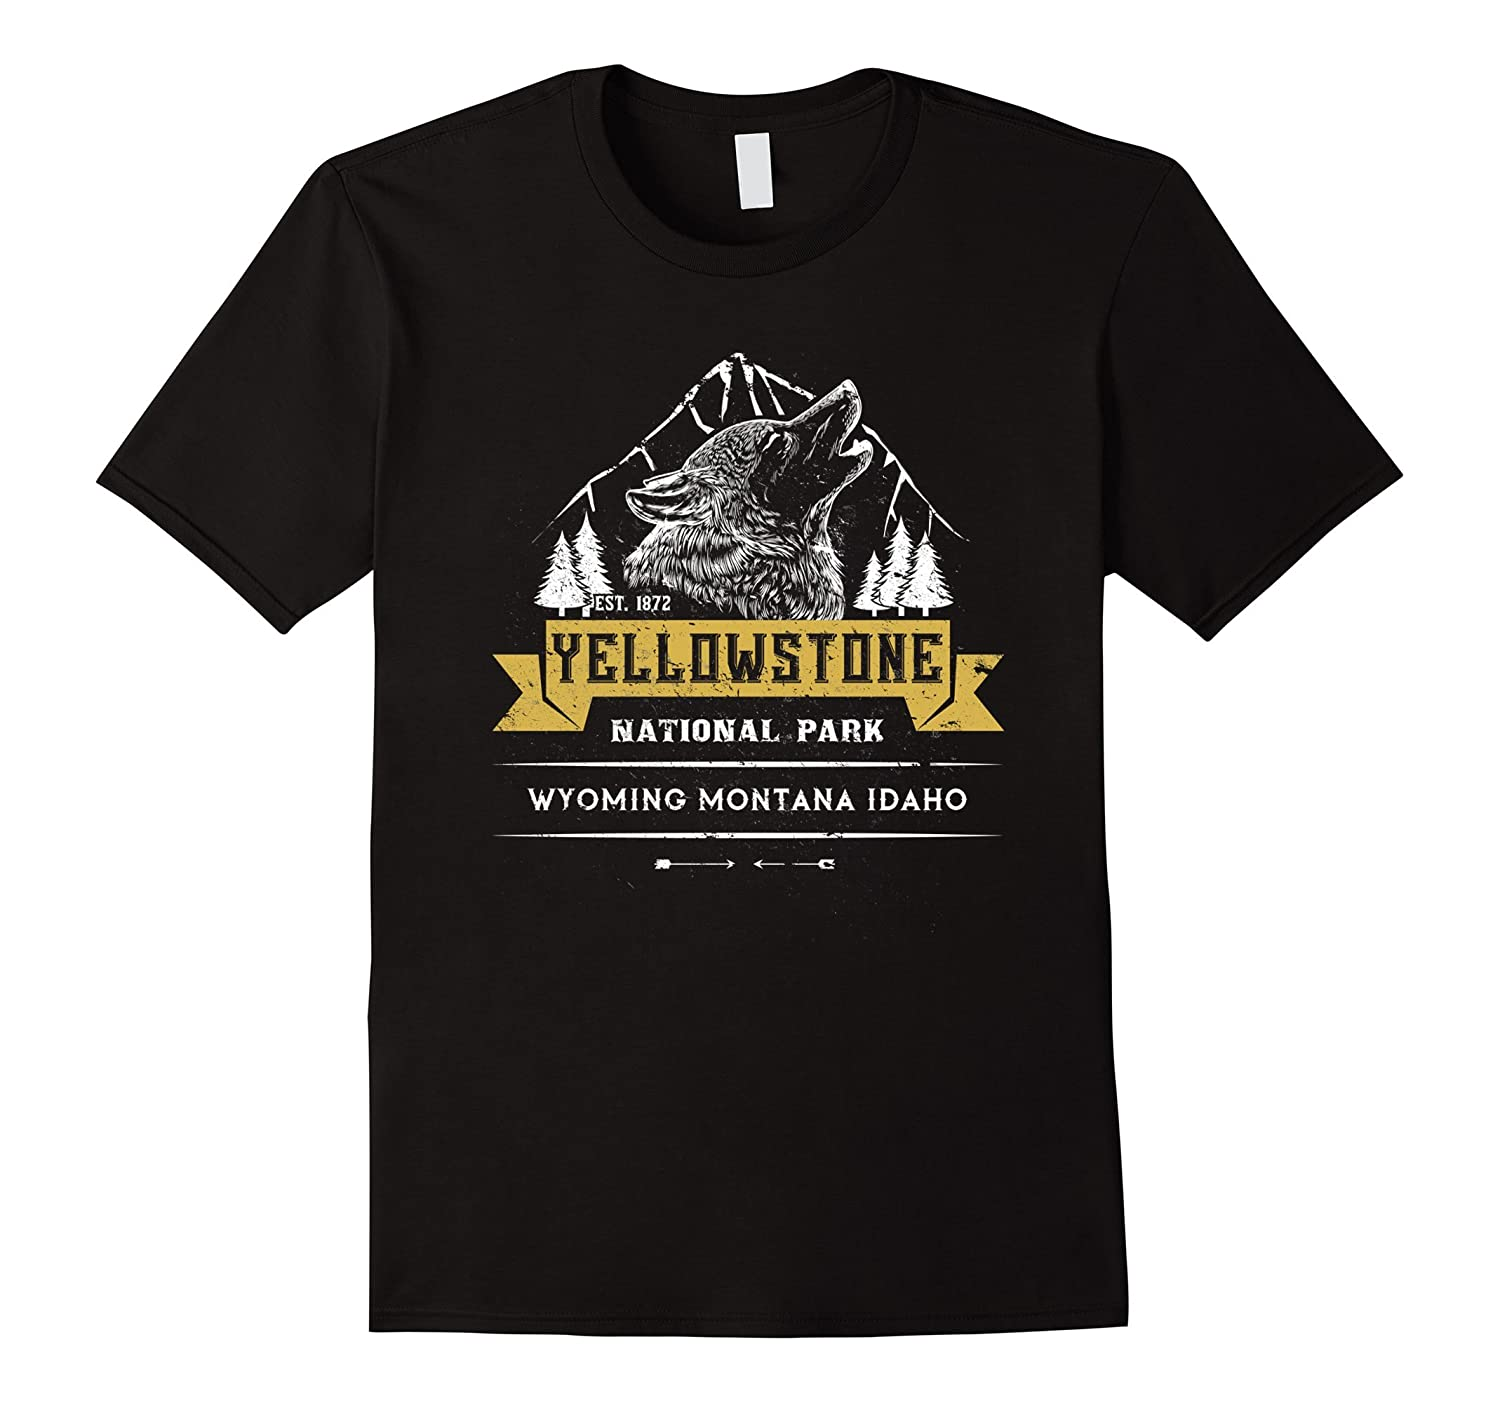 Yellowstone National Park T shirt Camp Hike Climb Wolf-T-Shirt